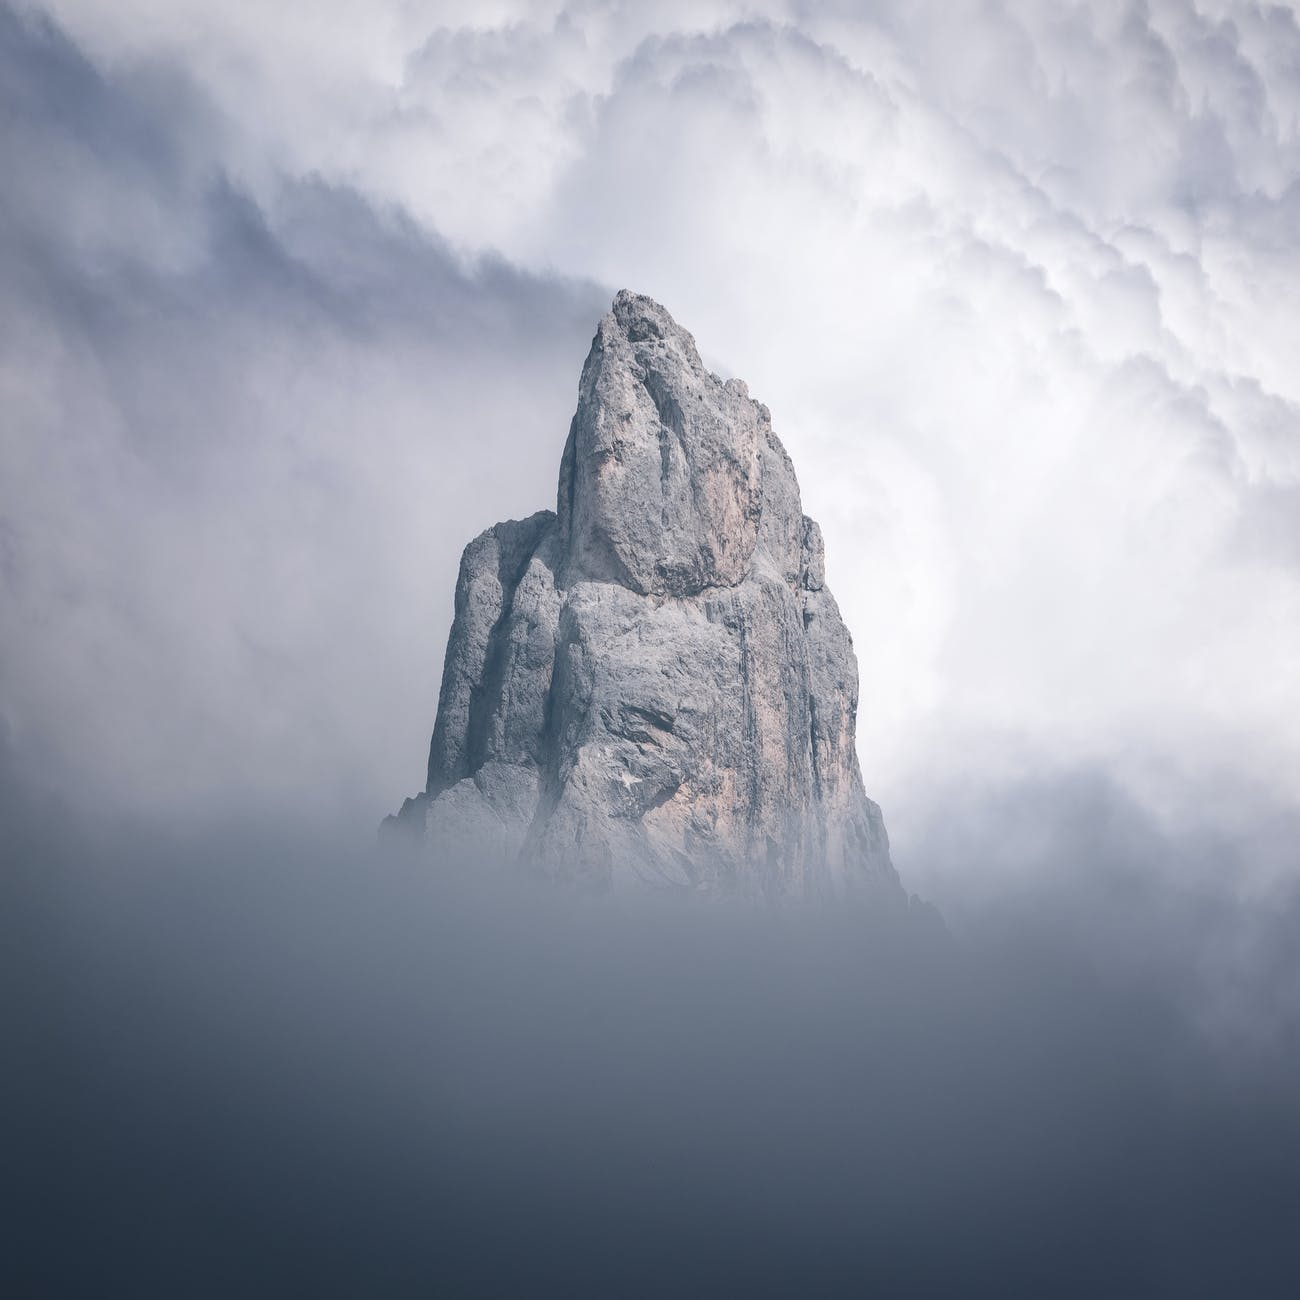 brown rocky mountain under white clouds